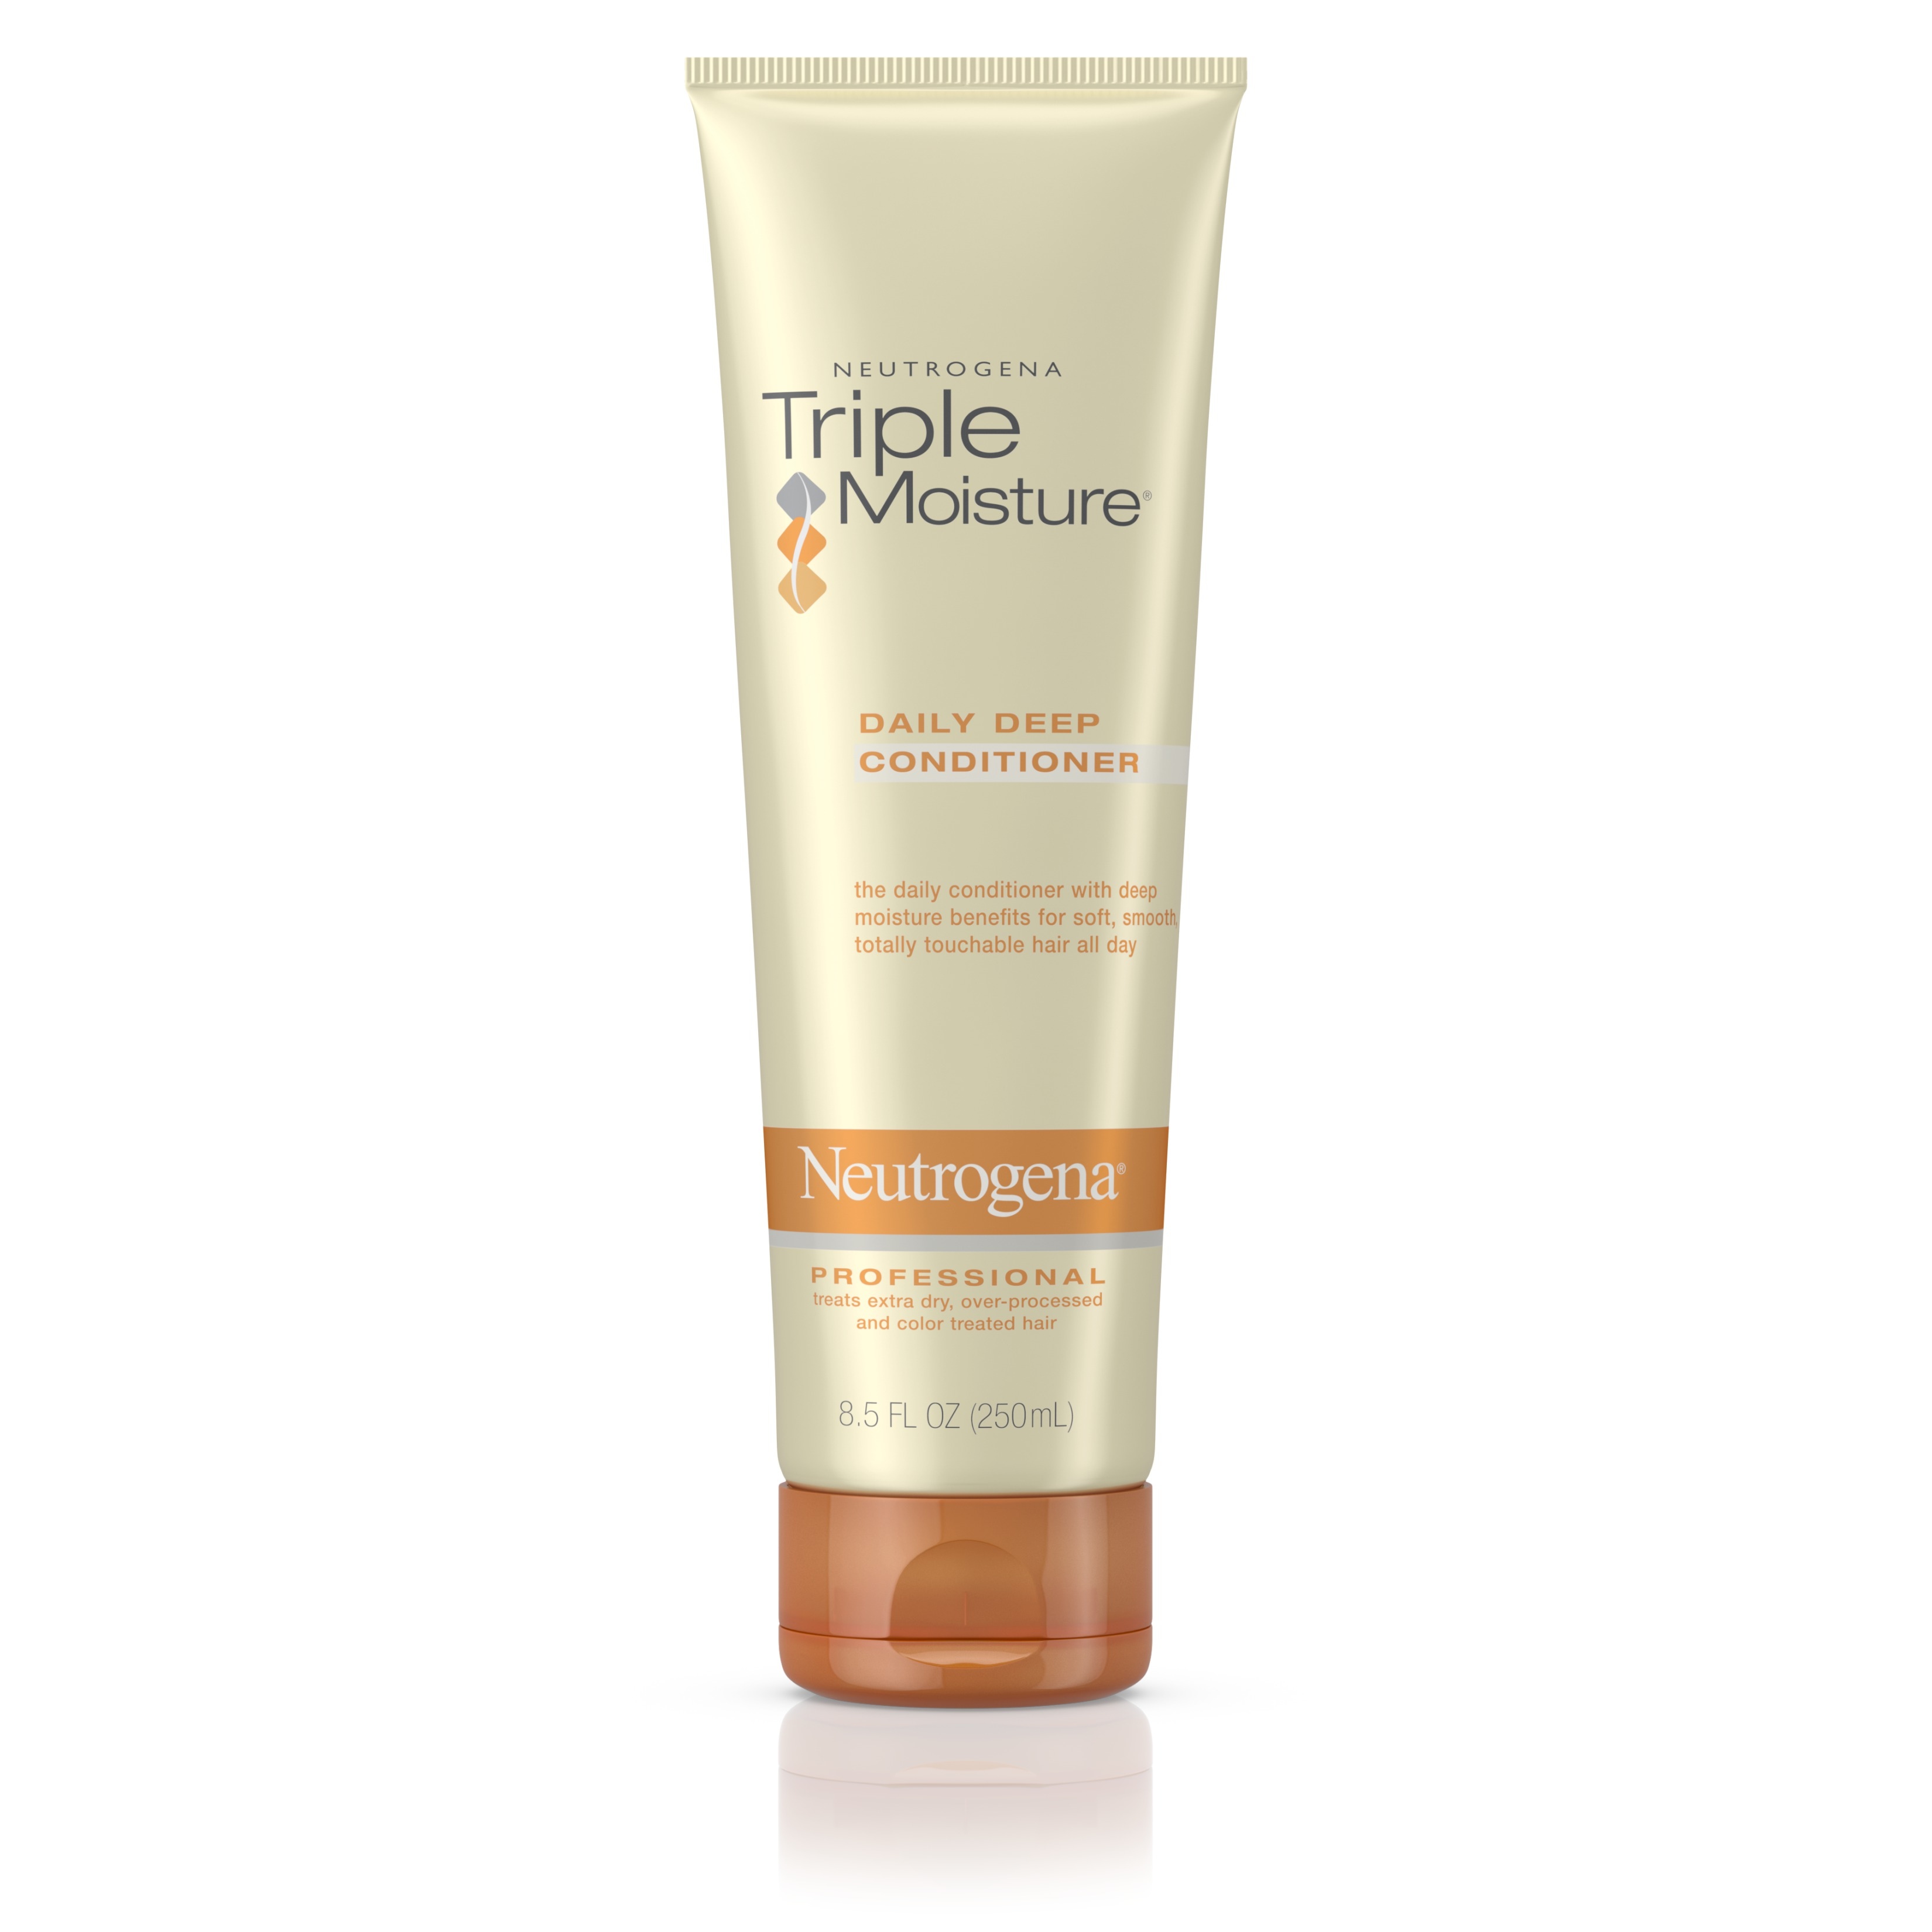 Neutrogena Triple Moisture Daily Deep Hair Conditioner, 8.5 fl. oz